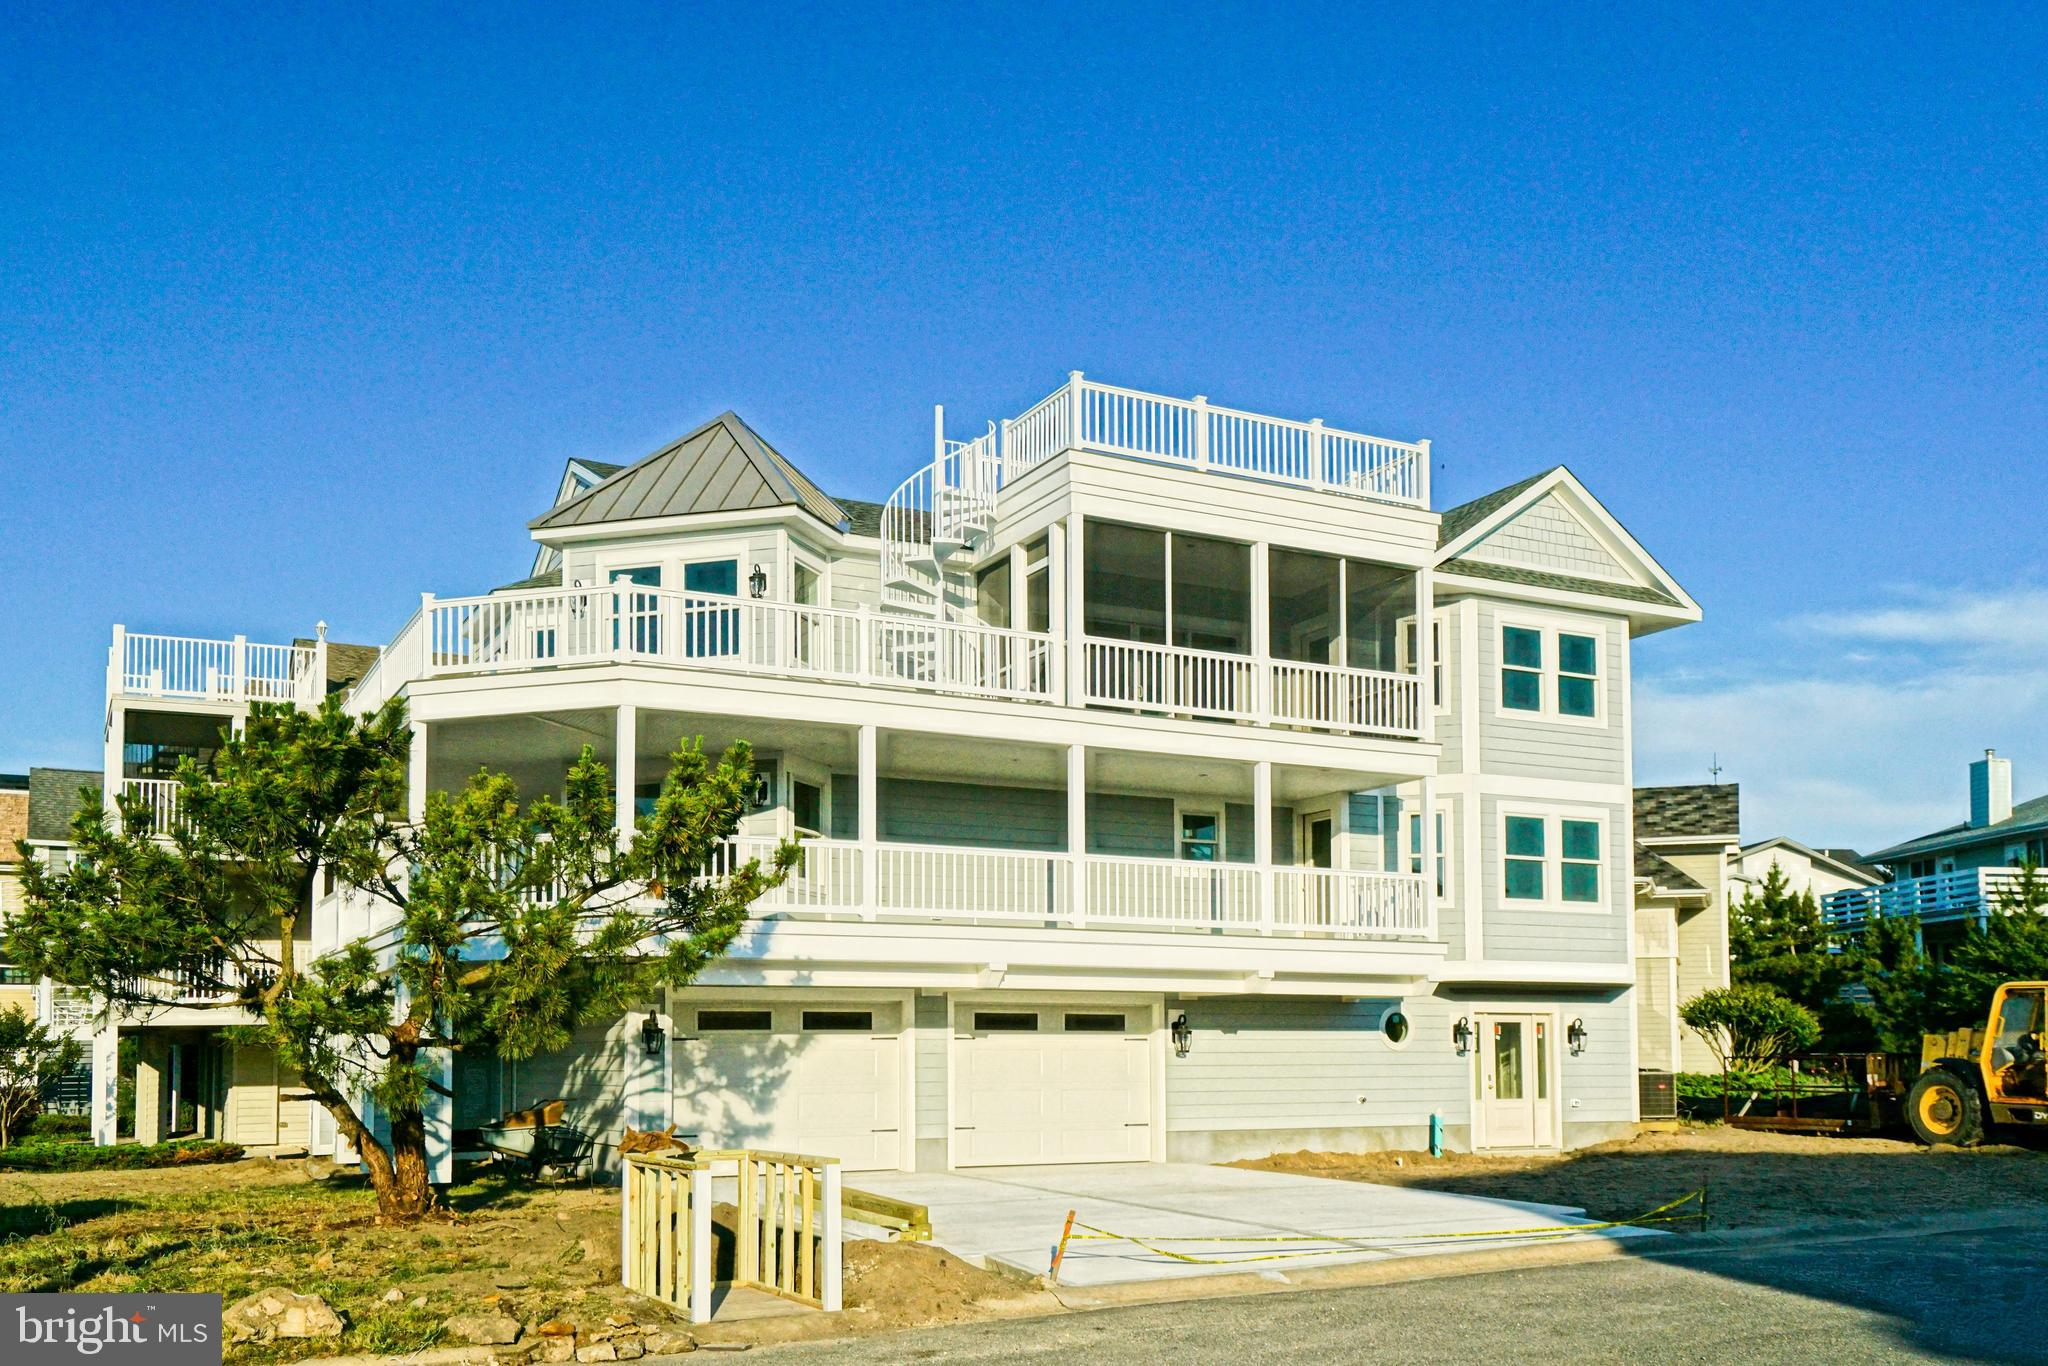 NEW CONSTRUCTION IN CAPE SHORES! Designed with supreme coastal living in mind, you're invited to experience it from the ground up! This new construction home offers 5 bedrooms, 3 Full and 2 Half Baths, and features an open, inverted floor plan - accentuating the property's fantastic beach block location, elevator, private master bedroom, plus multiple outdoor spaces to enjoy soothing bay breezes - including the rooftop deck with exclusive bay & state park views!  Located just across the street from the beach in the amenity-rich Cape Shores that offers community outdoor pool, tennis, private fishing pier, and sandy beach!